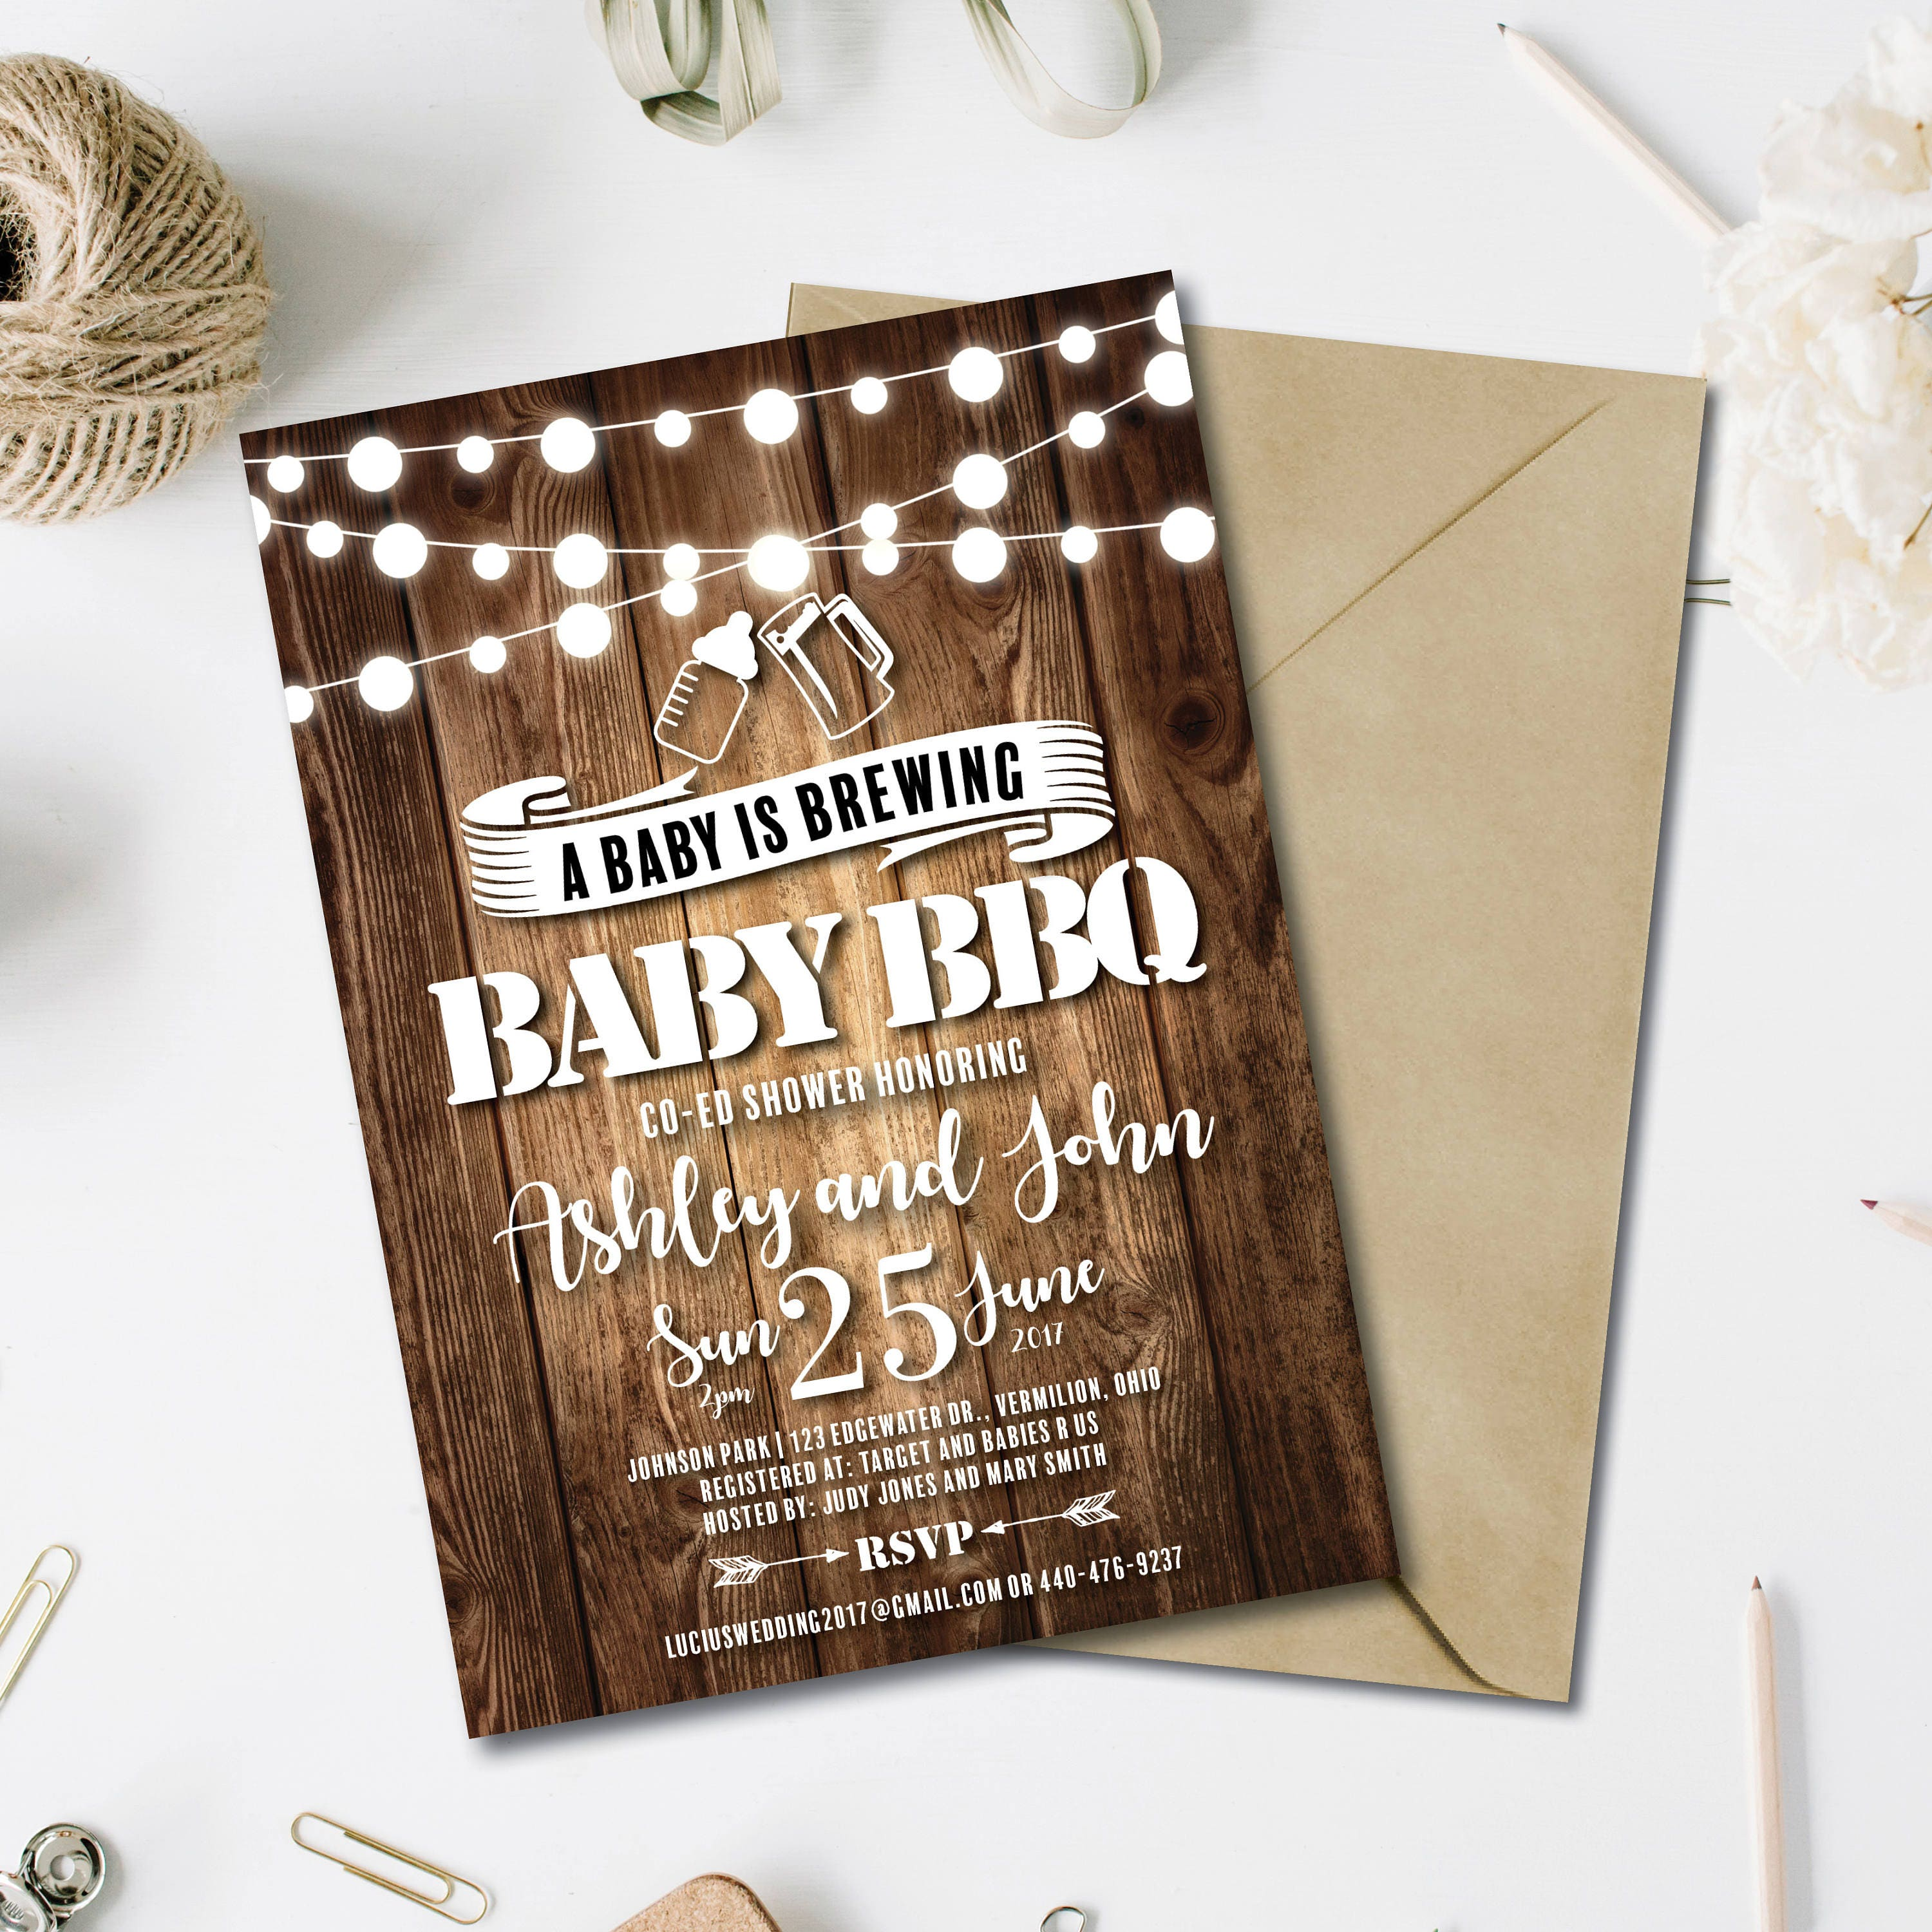 Baby Is Brewing Baby Q Shower Invitations Baby Q Shower Il Fullxfull Baby  Is Brewing Baby Q Shower Invitations Babyq Shower Rustic Baby Shower  Couples Baby ...